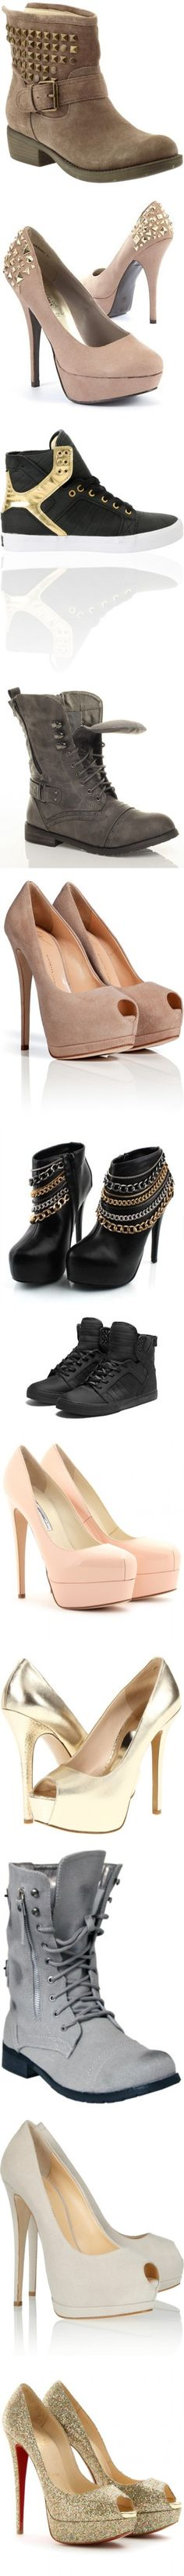 """Shoes"" by kimlovee ❤ liked on Polyvore"